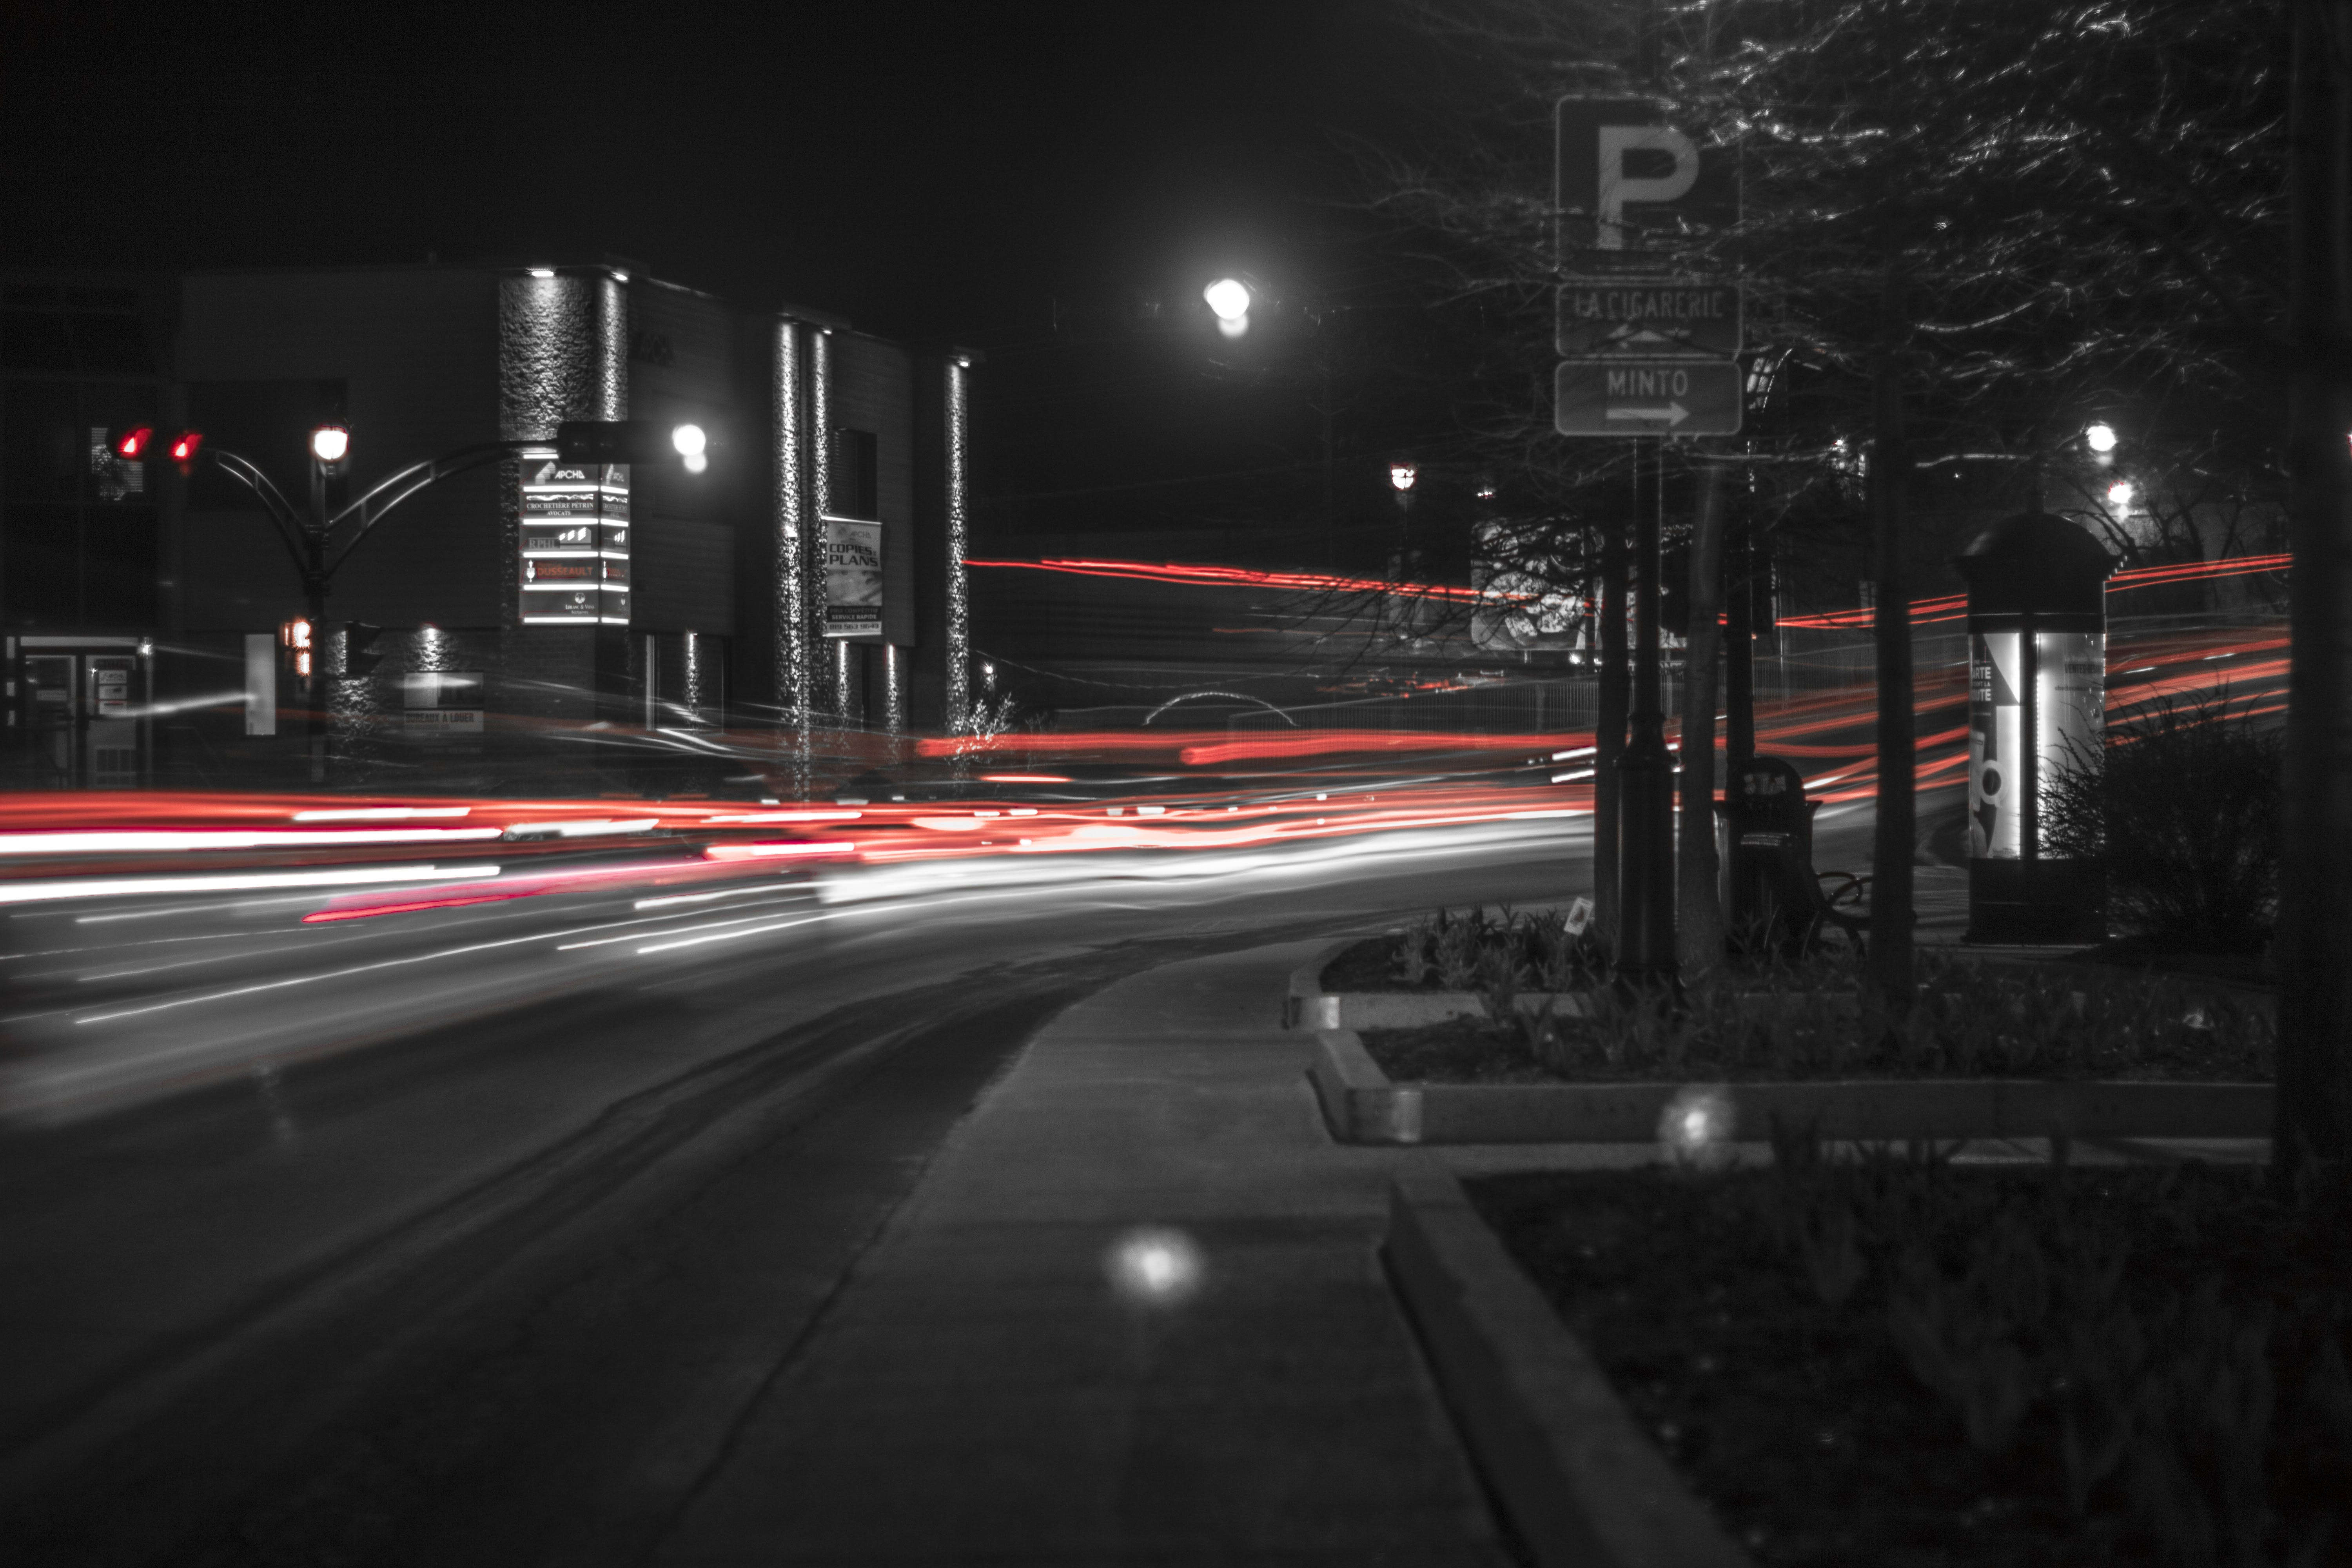 Grayscale and Time Lapse Photo of Vehicle at Night Time